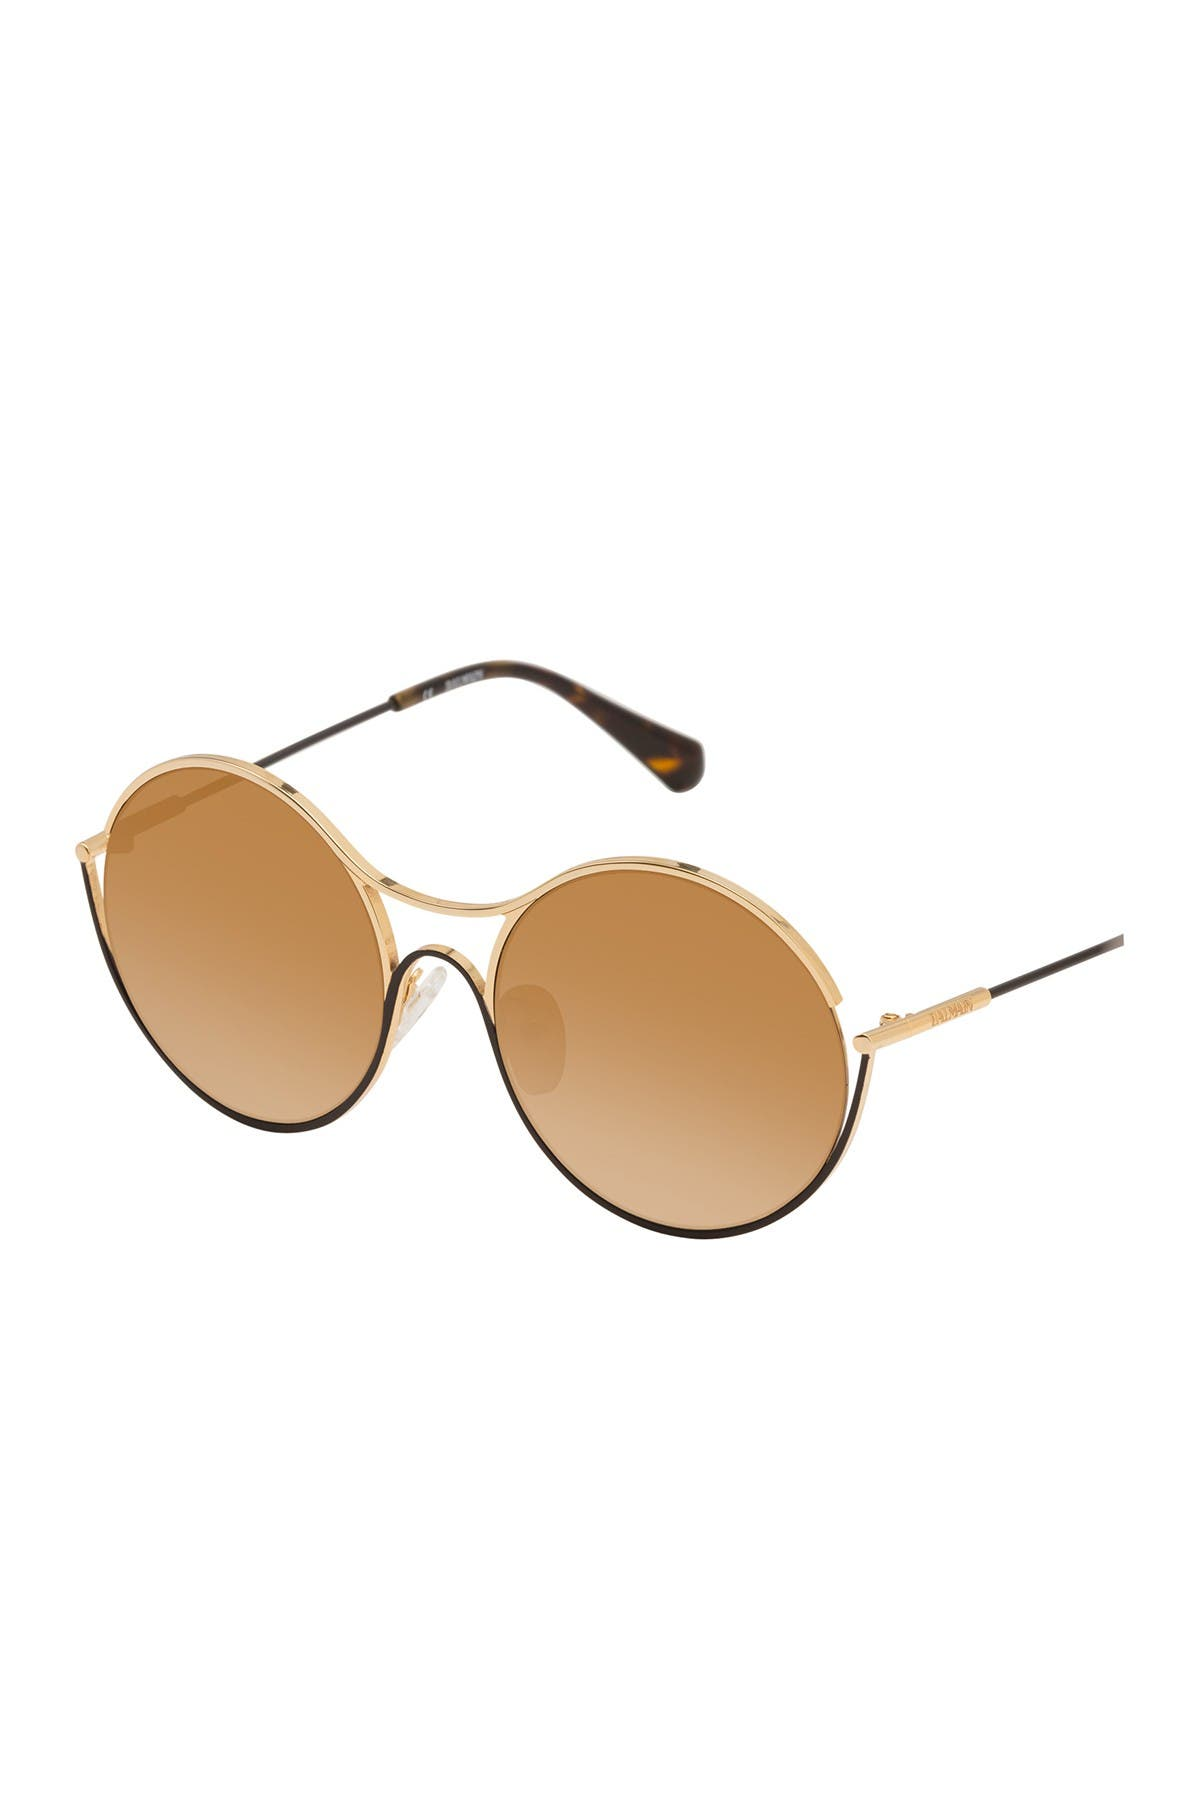 Image of Balmain 53mm Round Sunglasses